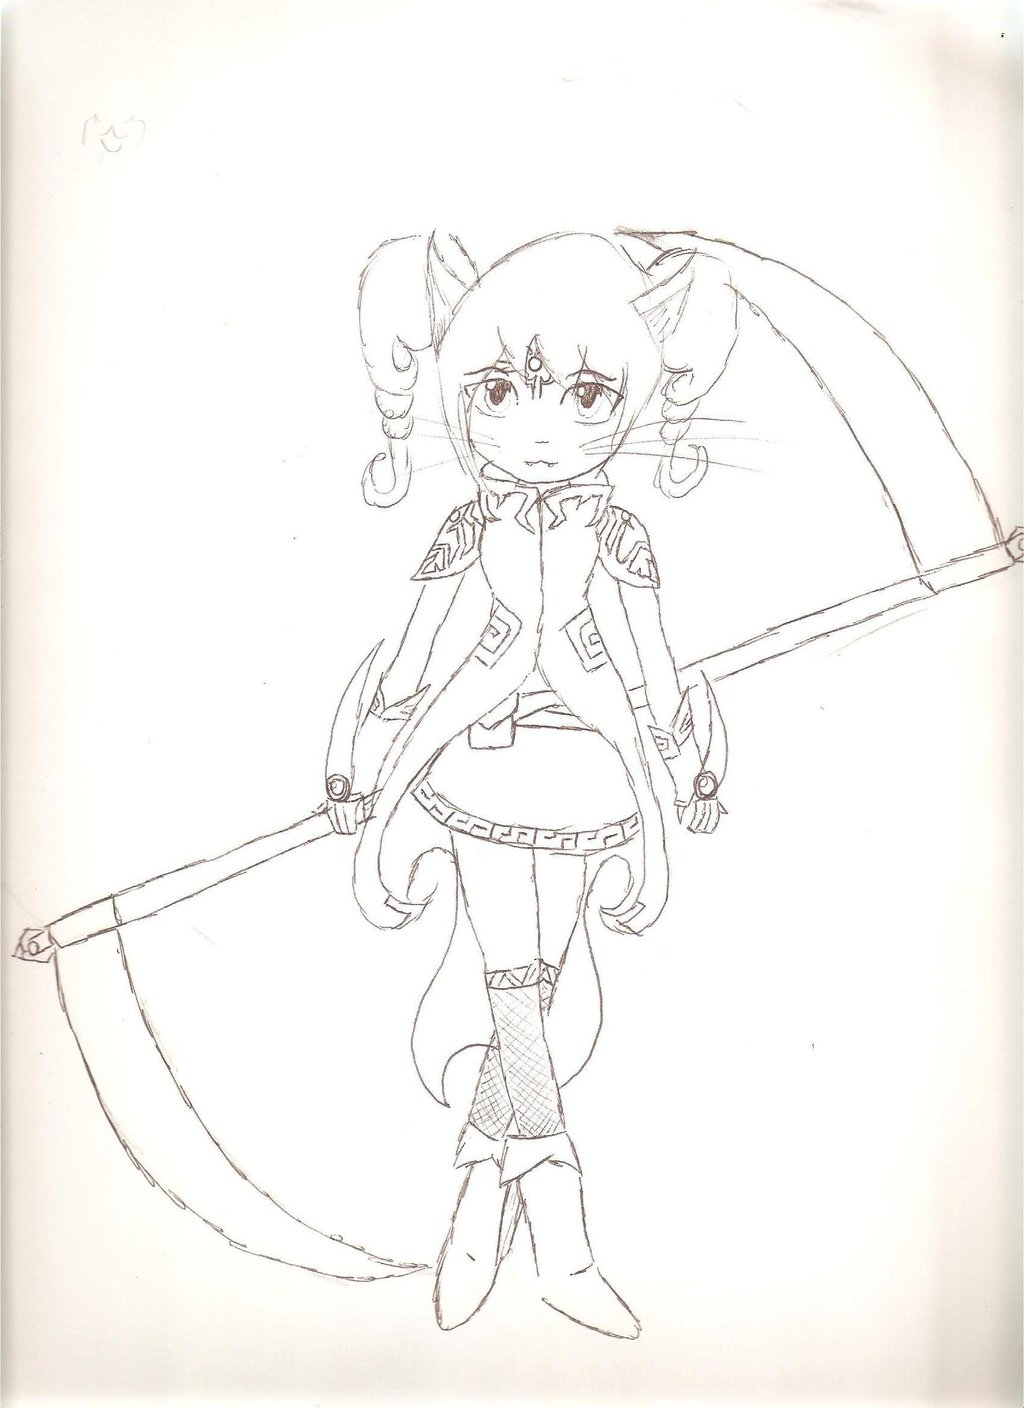 Drawn scythe headed (lineart) with scythe double